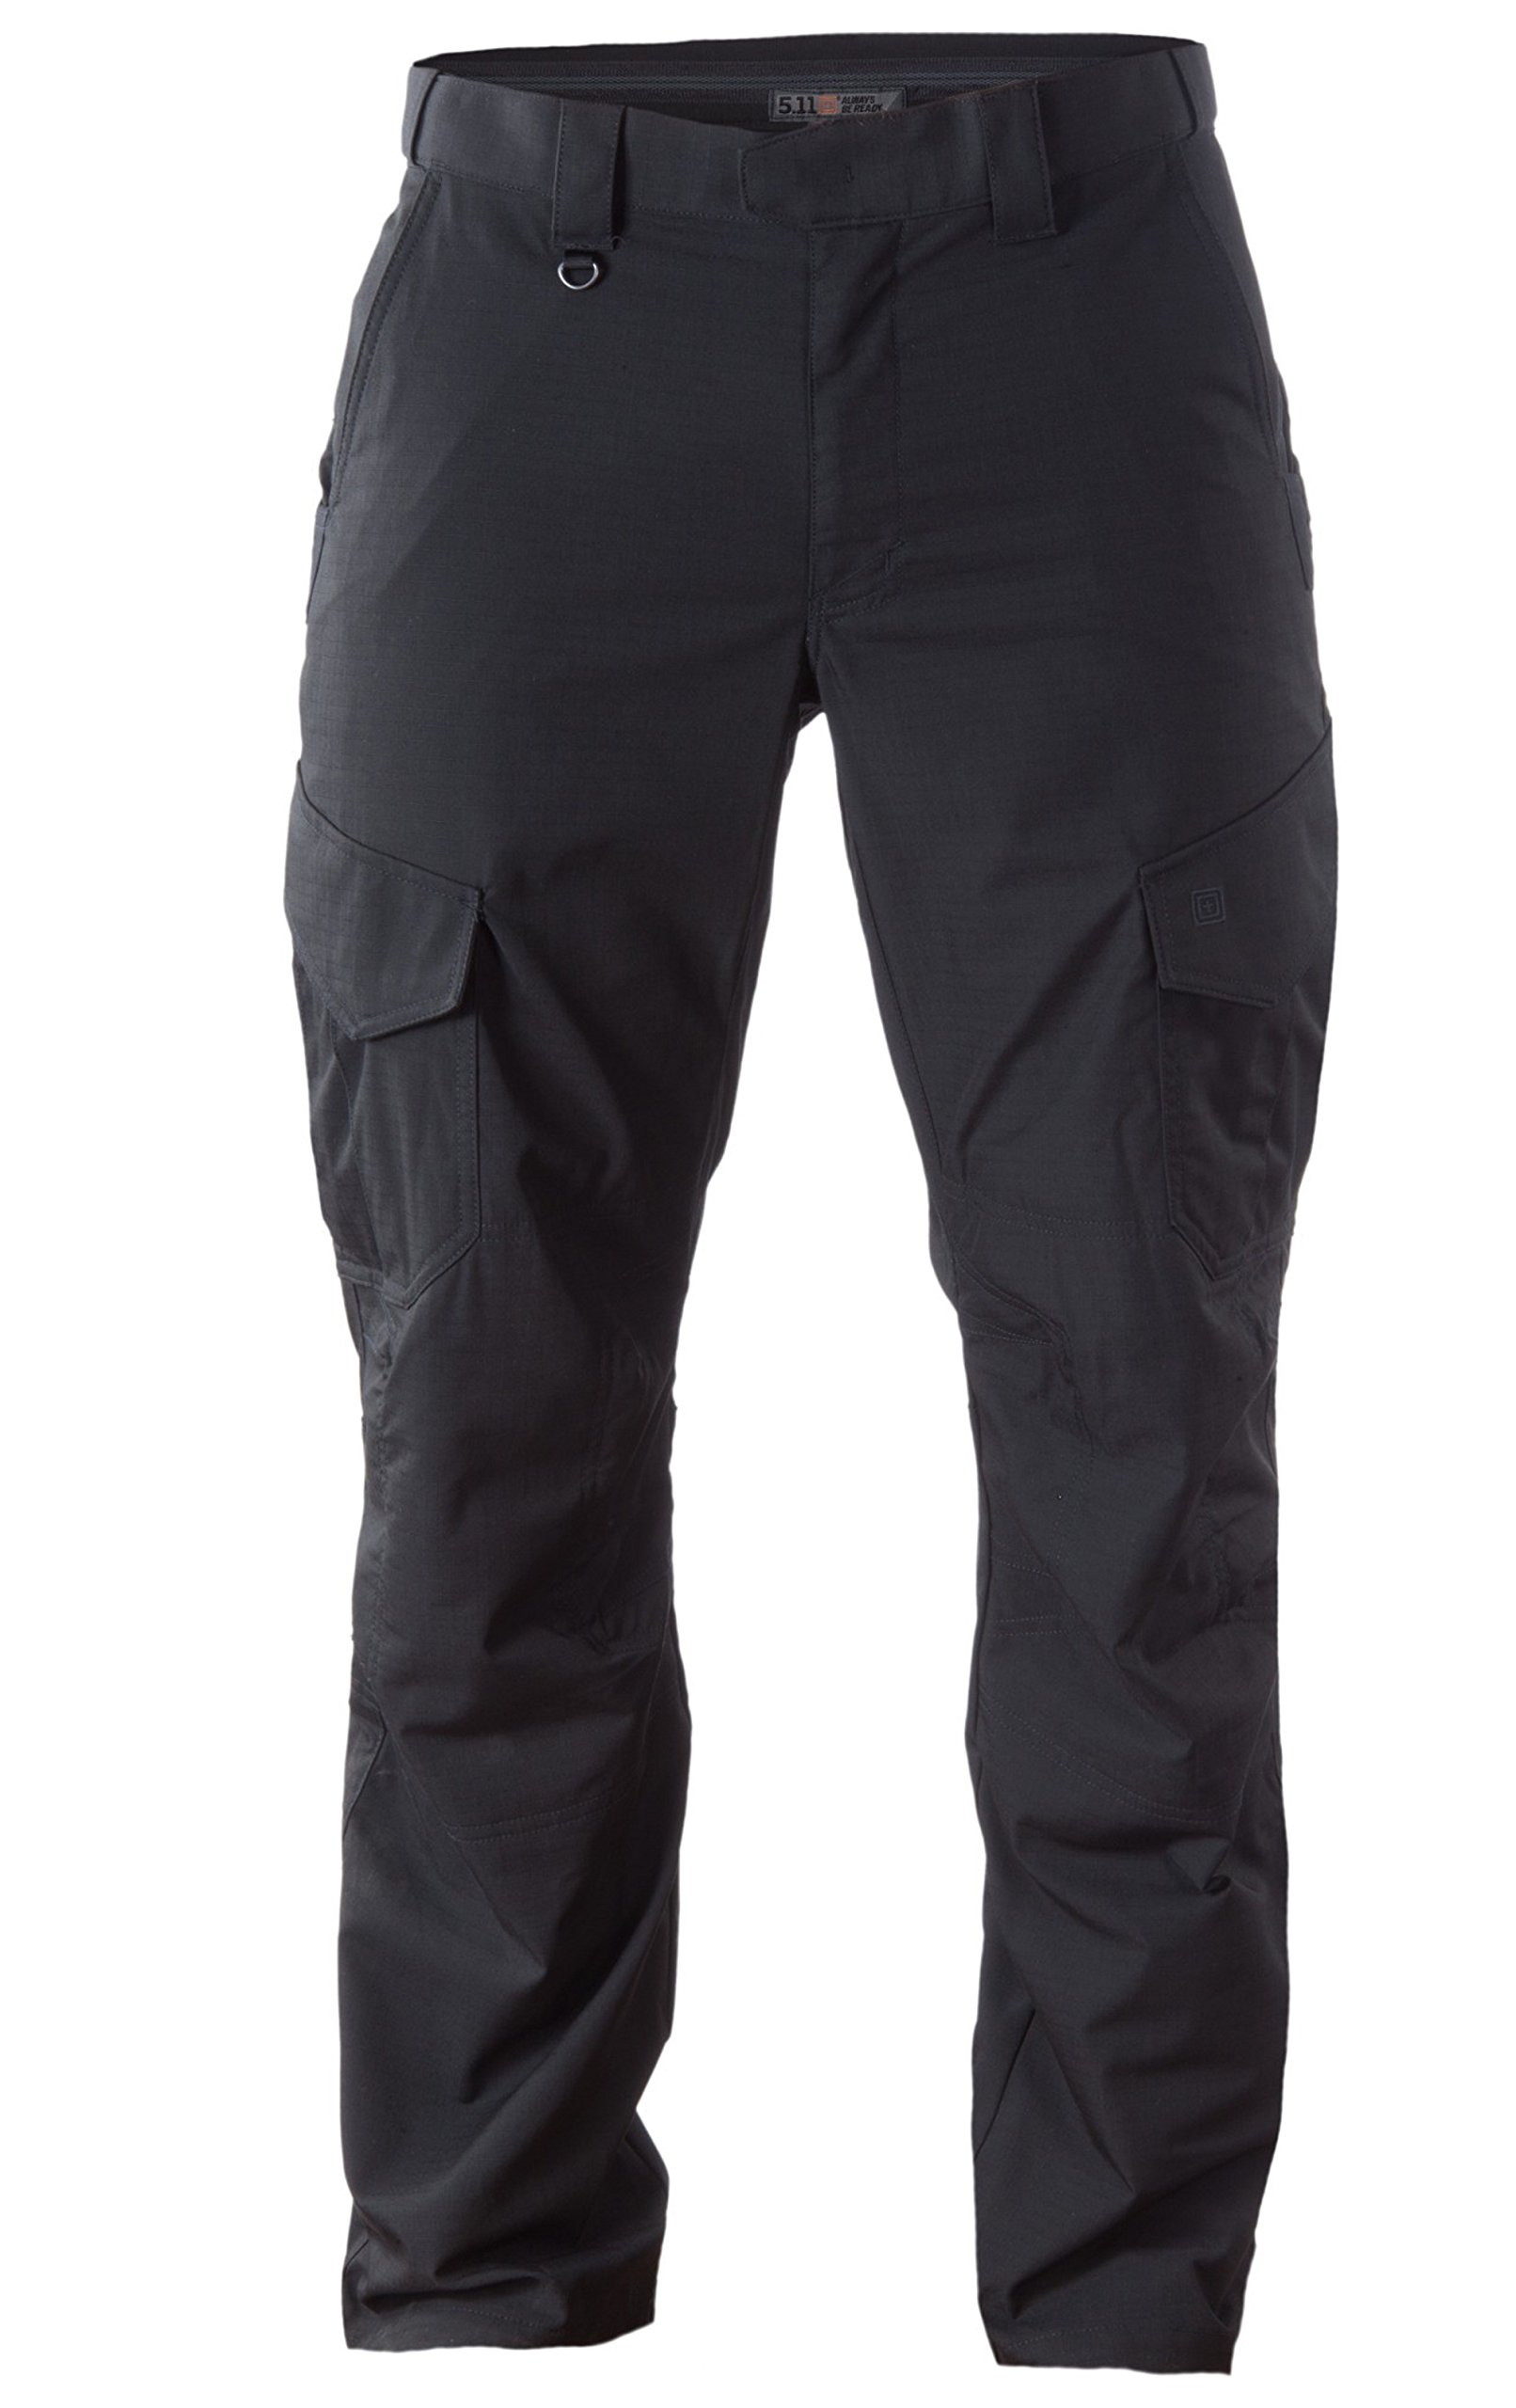 5.11 Men's Stryke Motor Pants, Black, 36-Waist/30-Length by 5.11